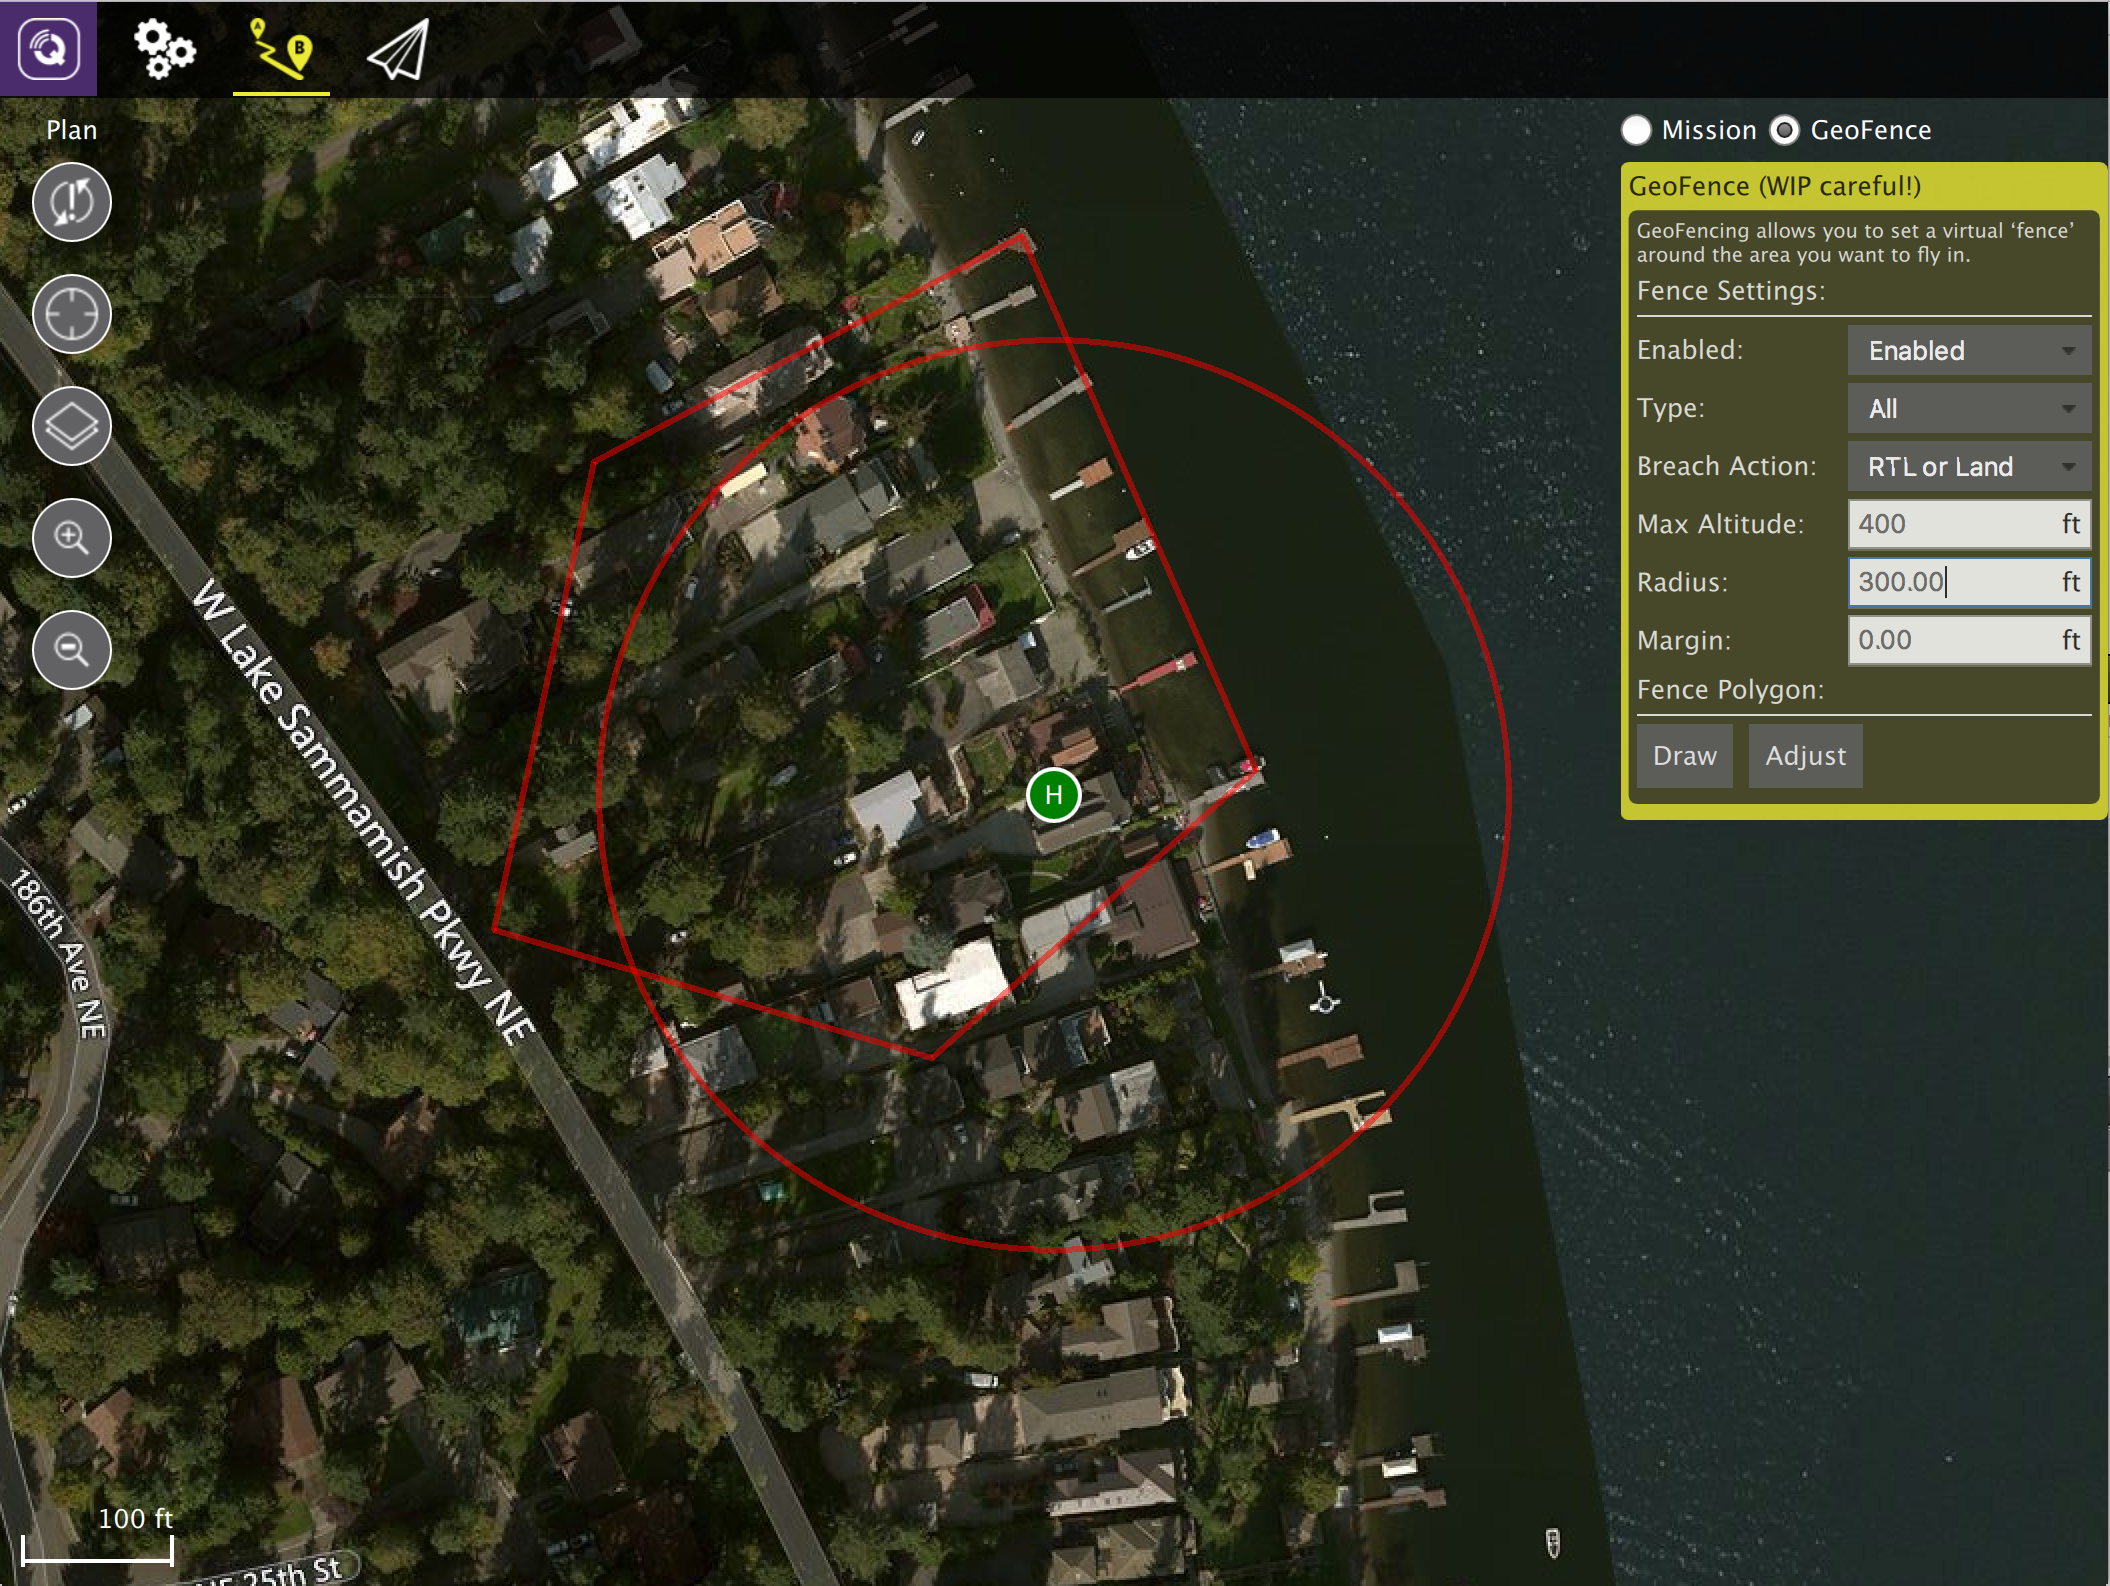 Announcing ArduPlane/Copter GeoFence support in QGroundControl